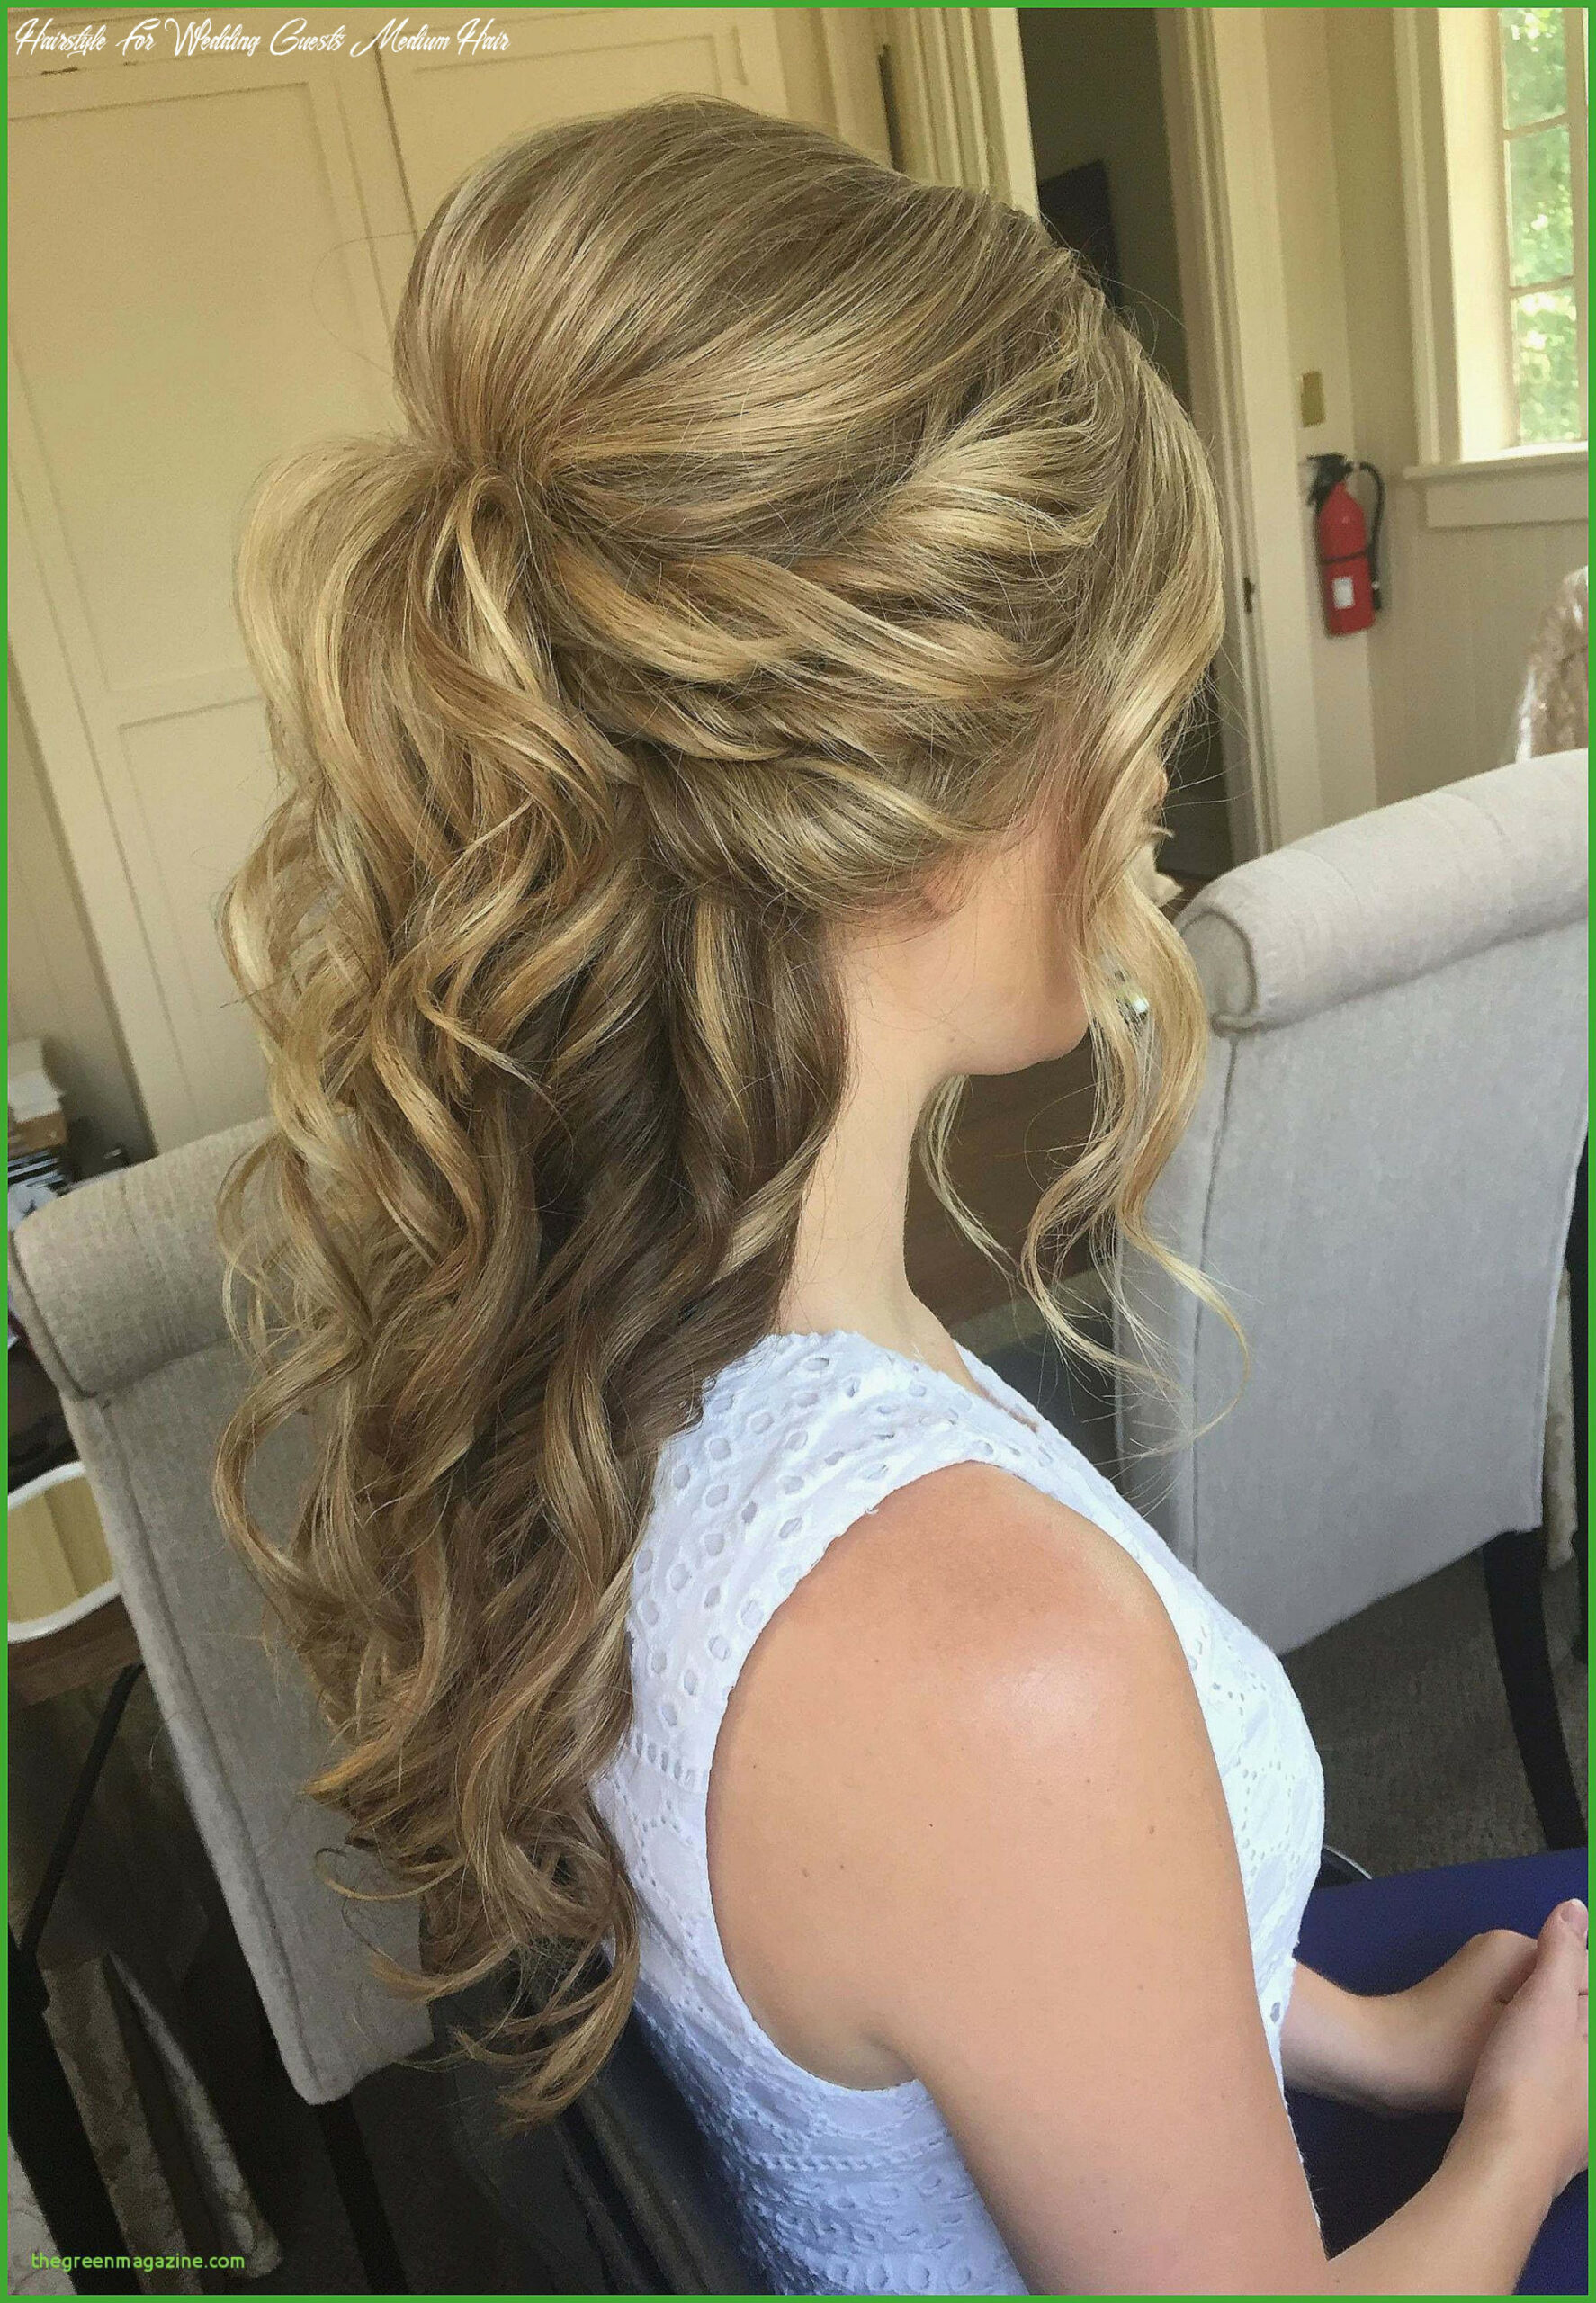 Hairstyles for wedding guests medium hair awesome short hairstyles